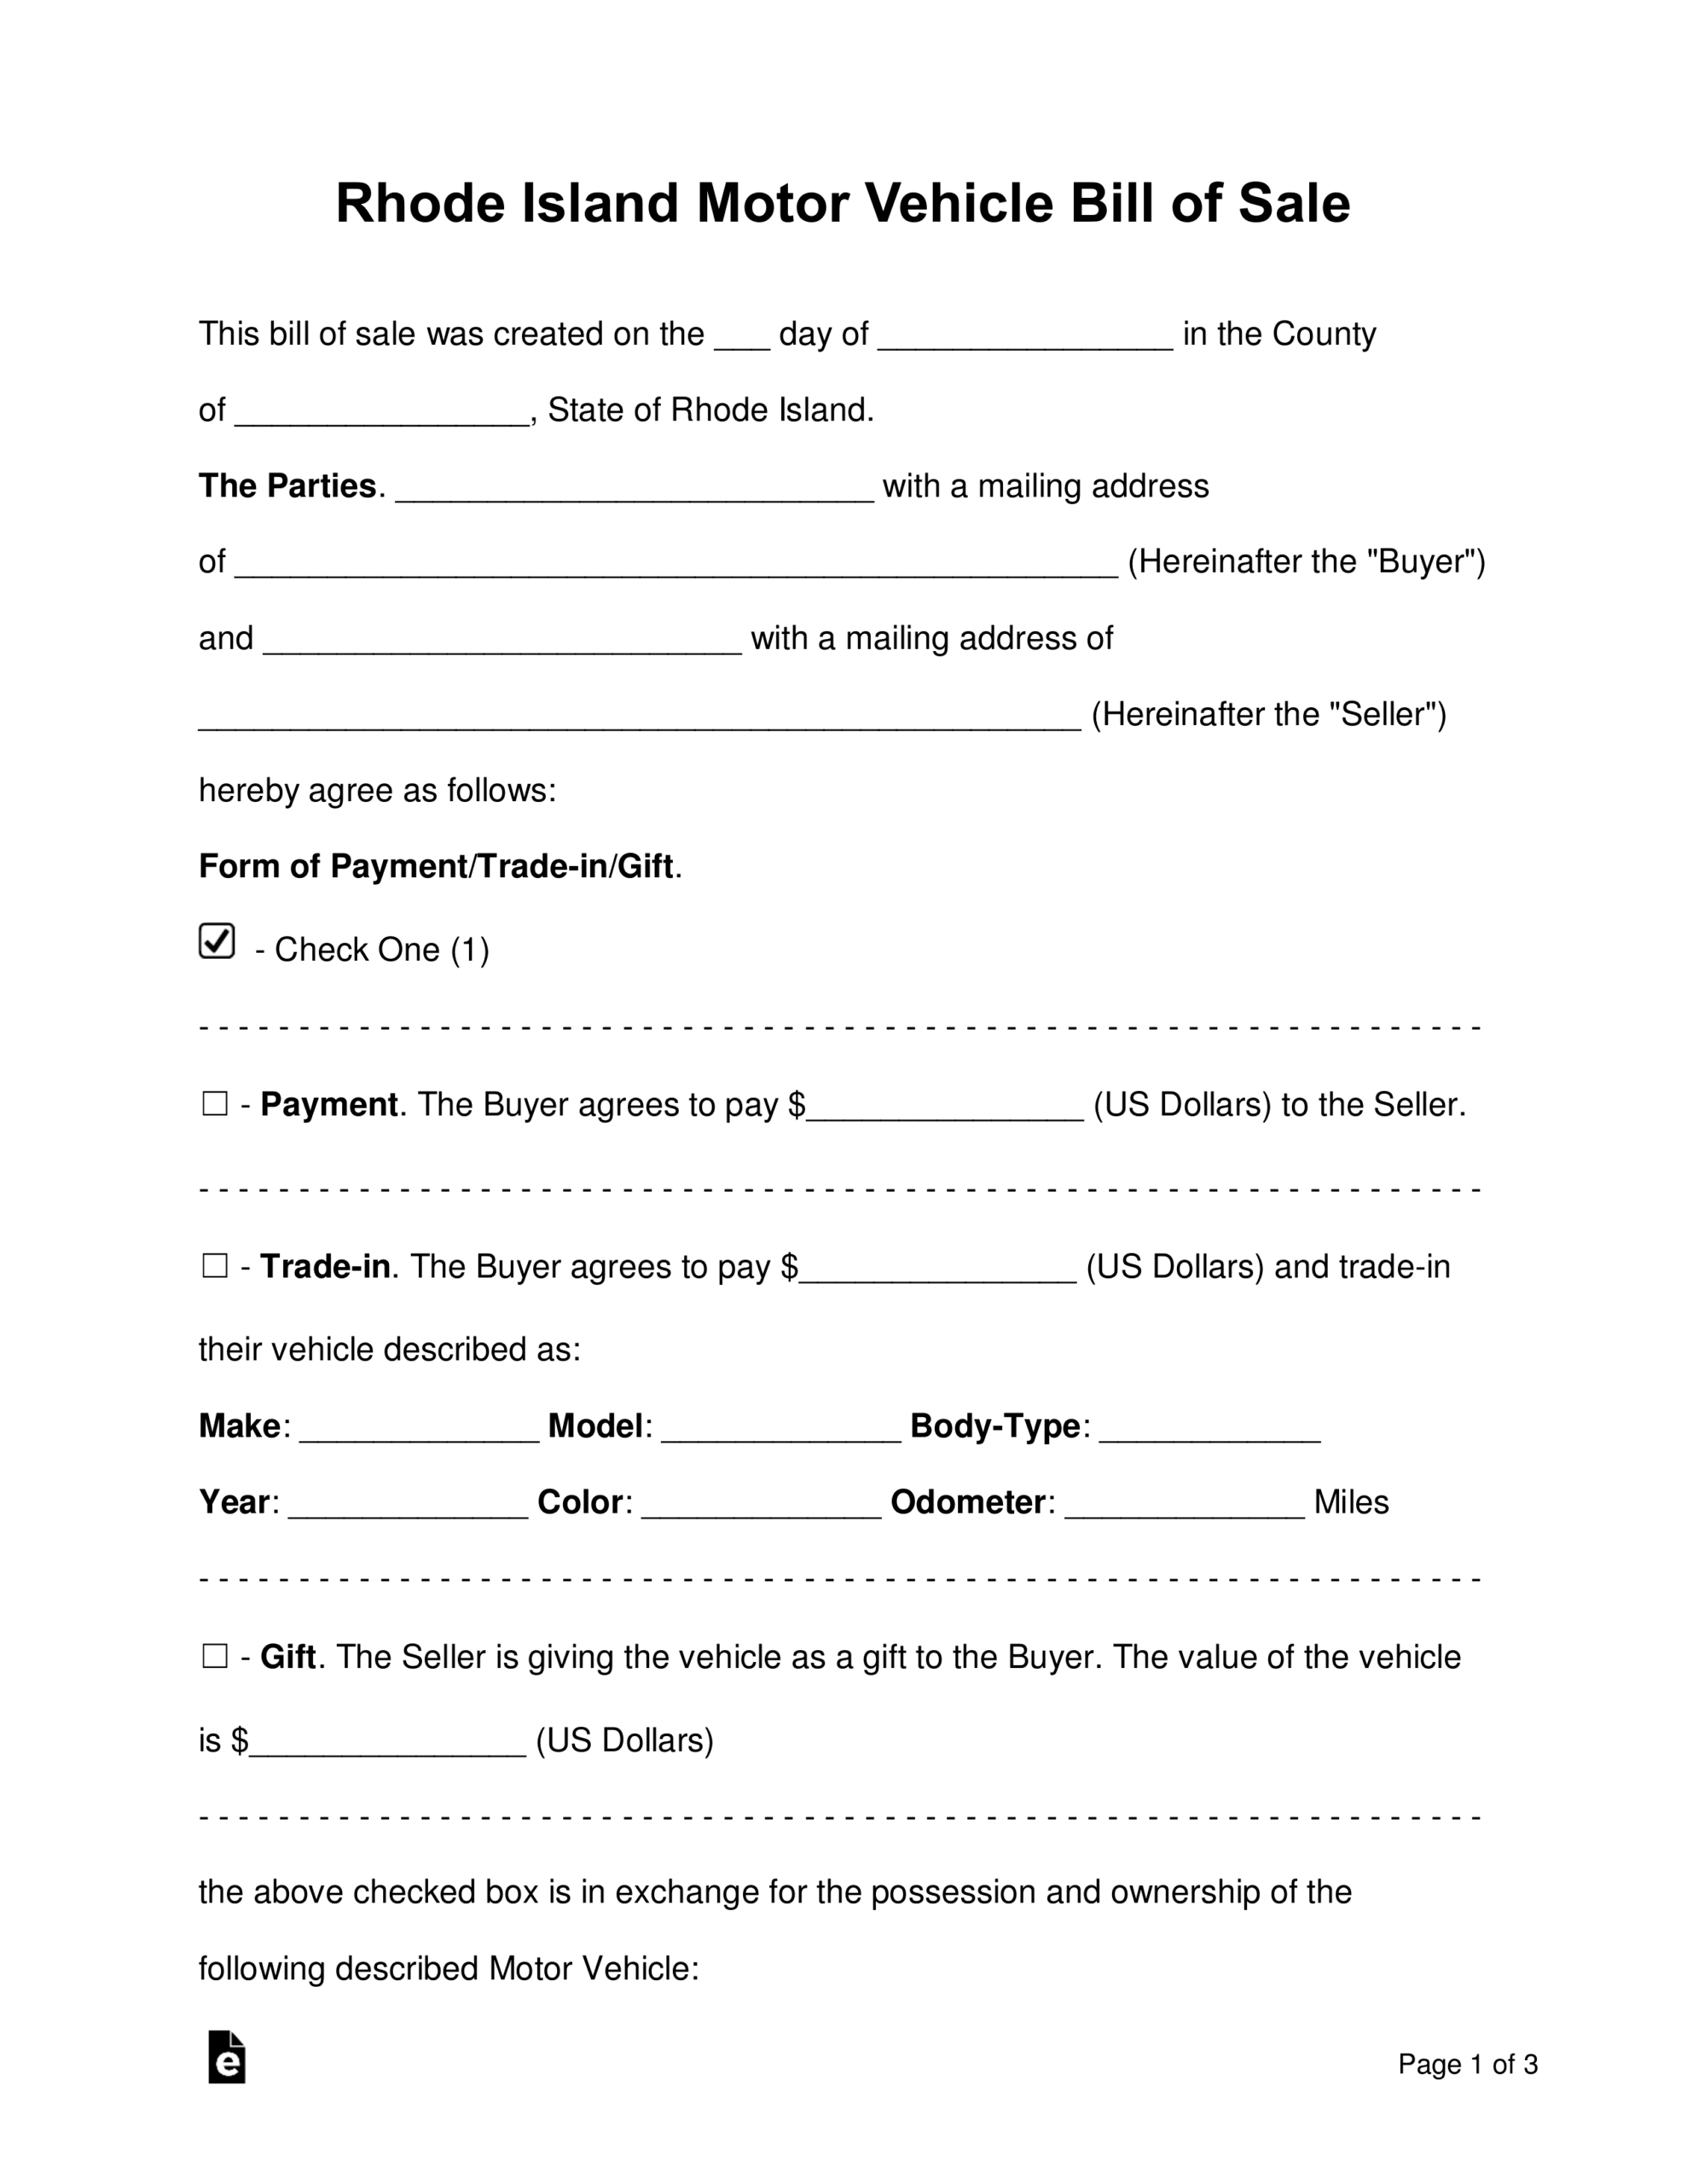 Free Rhode Island Motor Vehicle Bill Of Sale Form - Word Regarding Bill Of Sale Template Ri